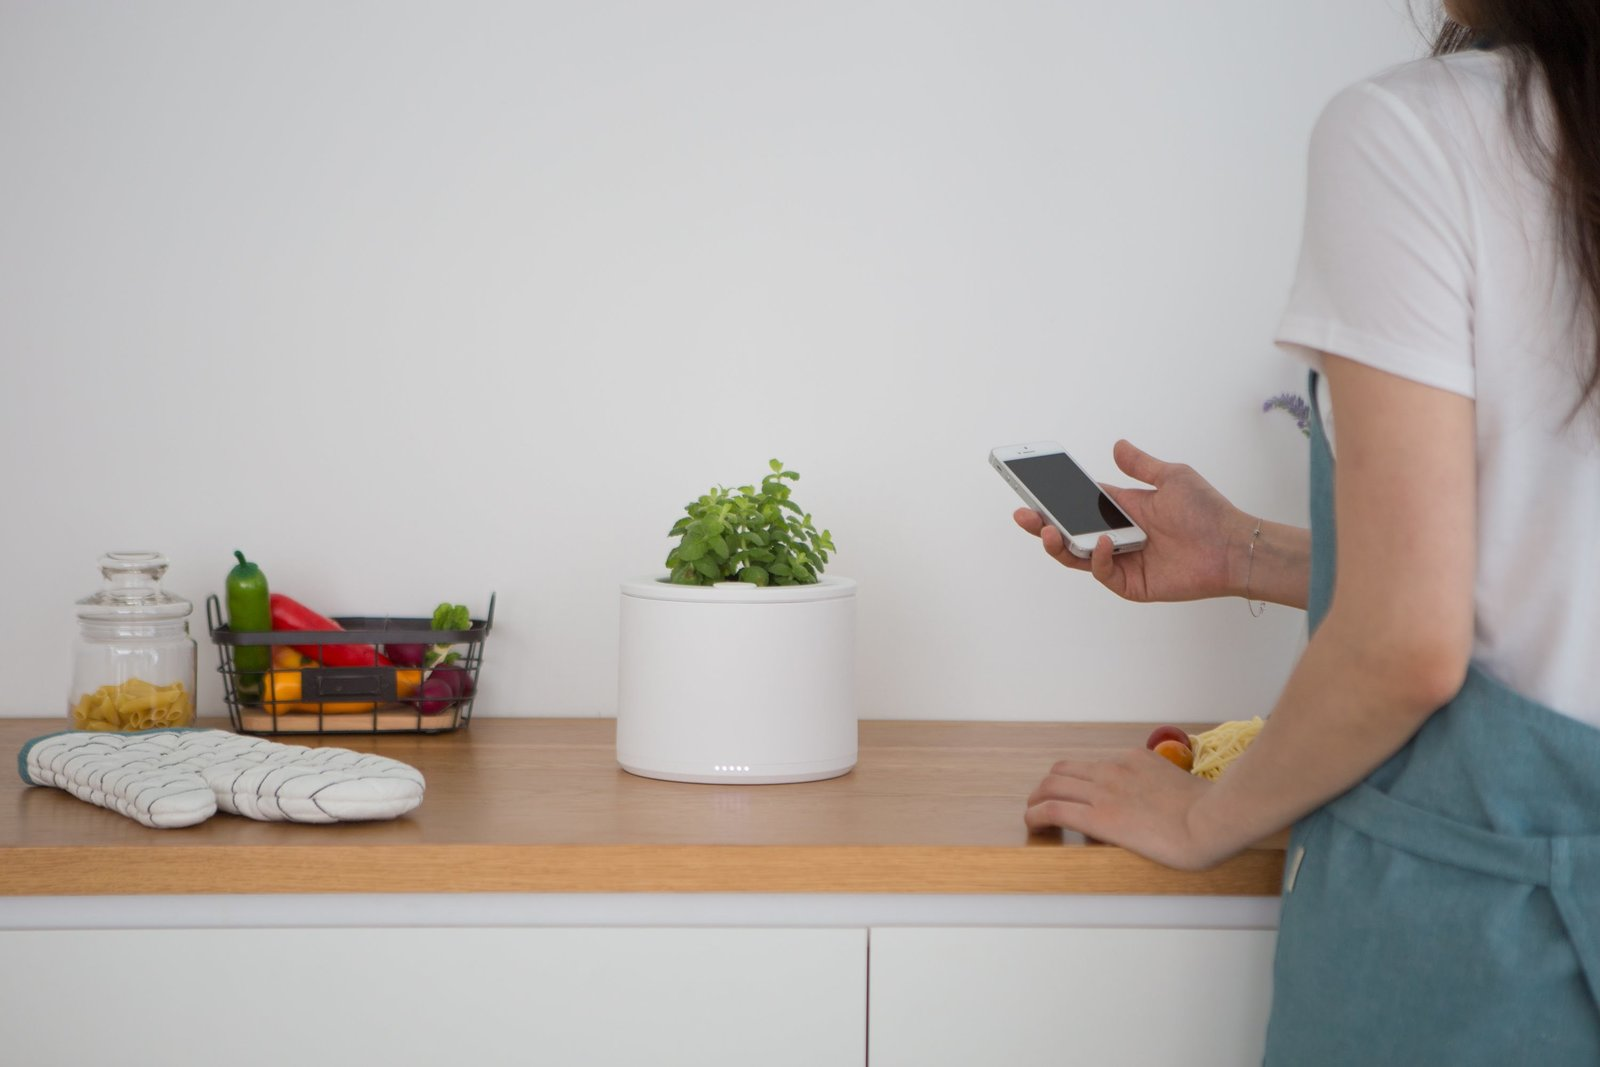 Photo 7 of 10 in Clueless About Gardening? These 5 Smart Planters Can Help